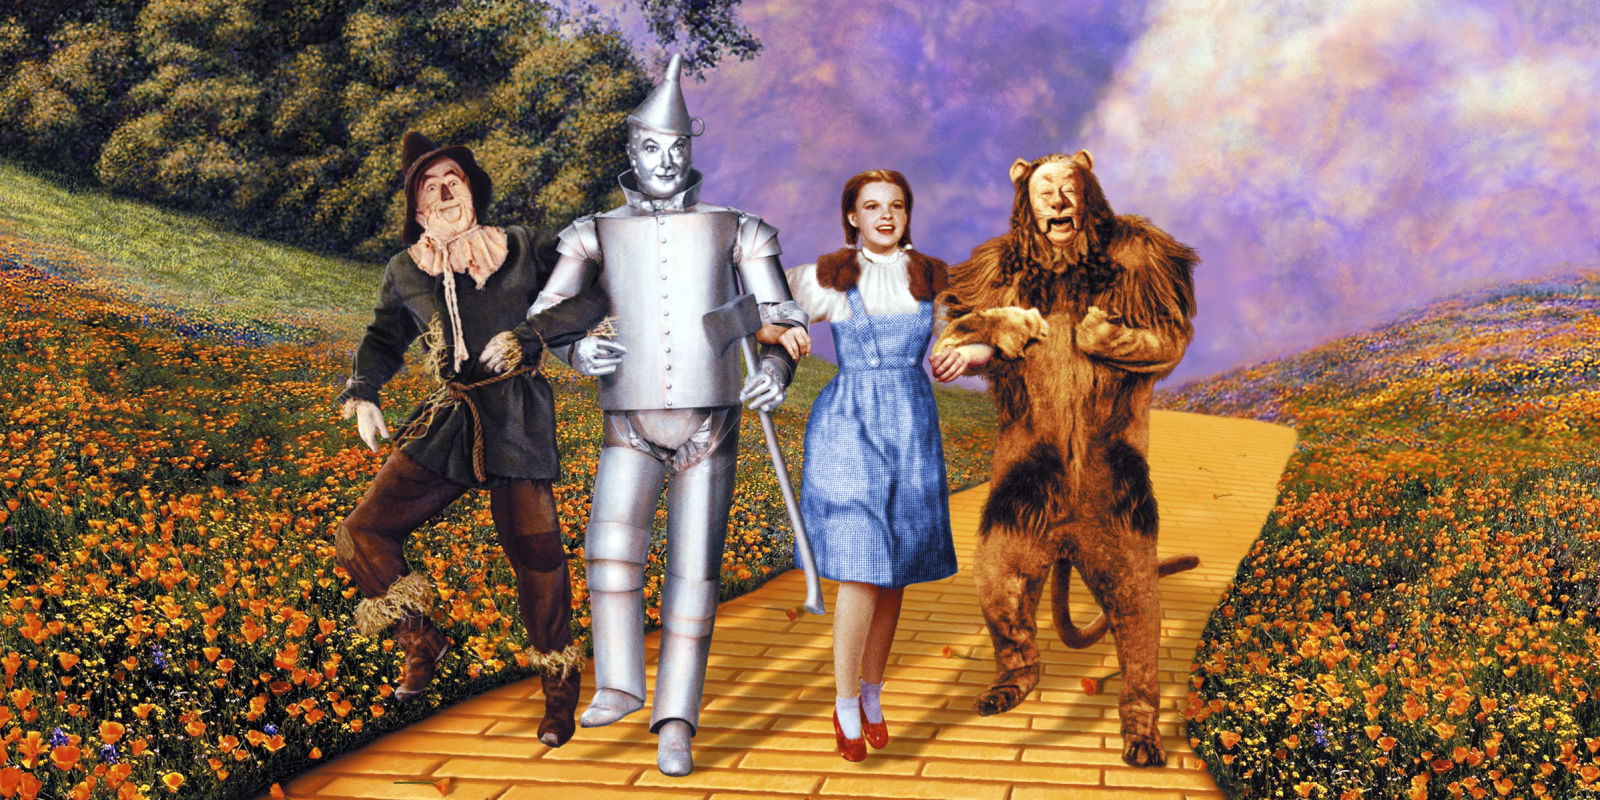 Behind the curtain wizard of oz - Behind The Curtain Wizard Of Oz 28